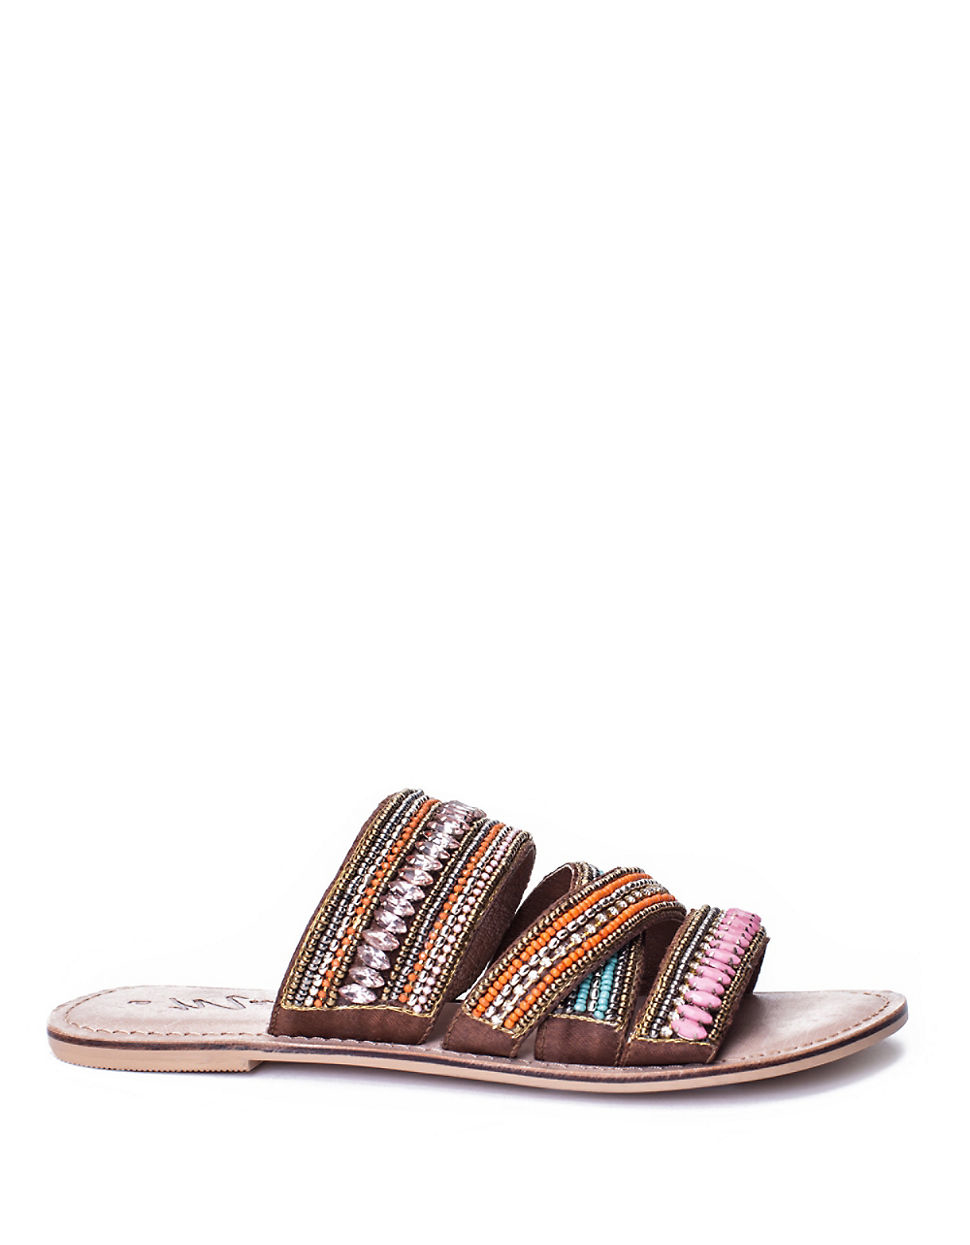 Multi-Colored Beaded Slide Sandals uumTBd